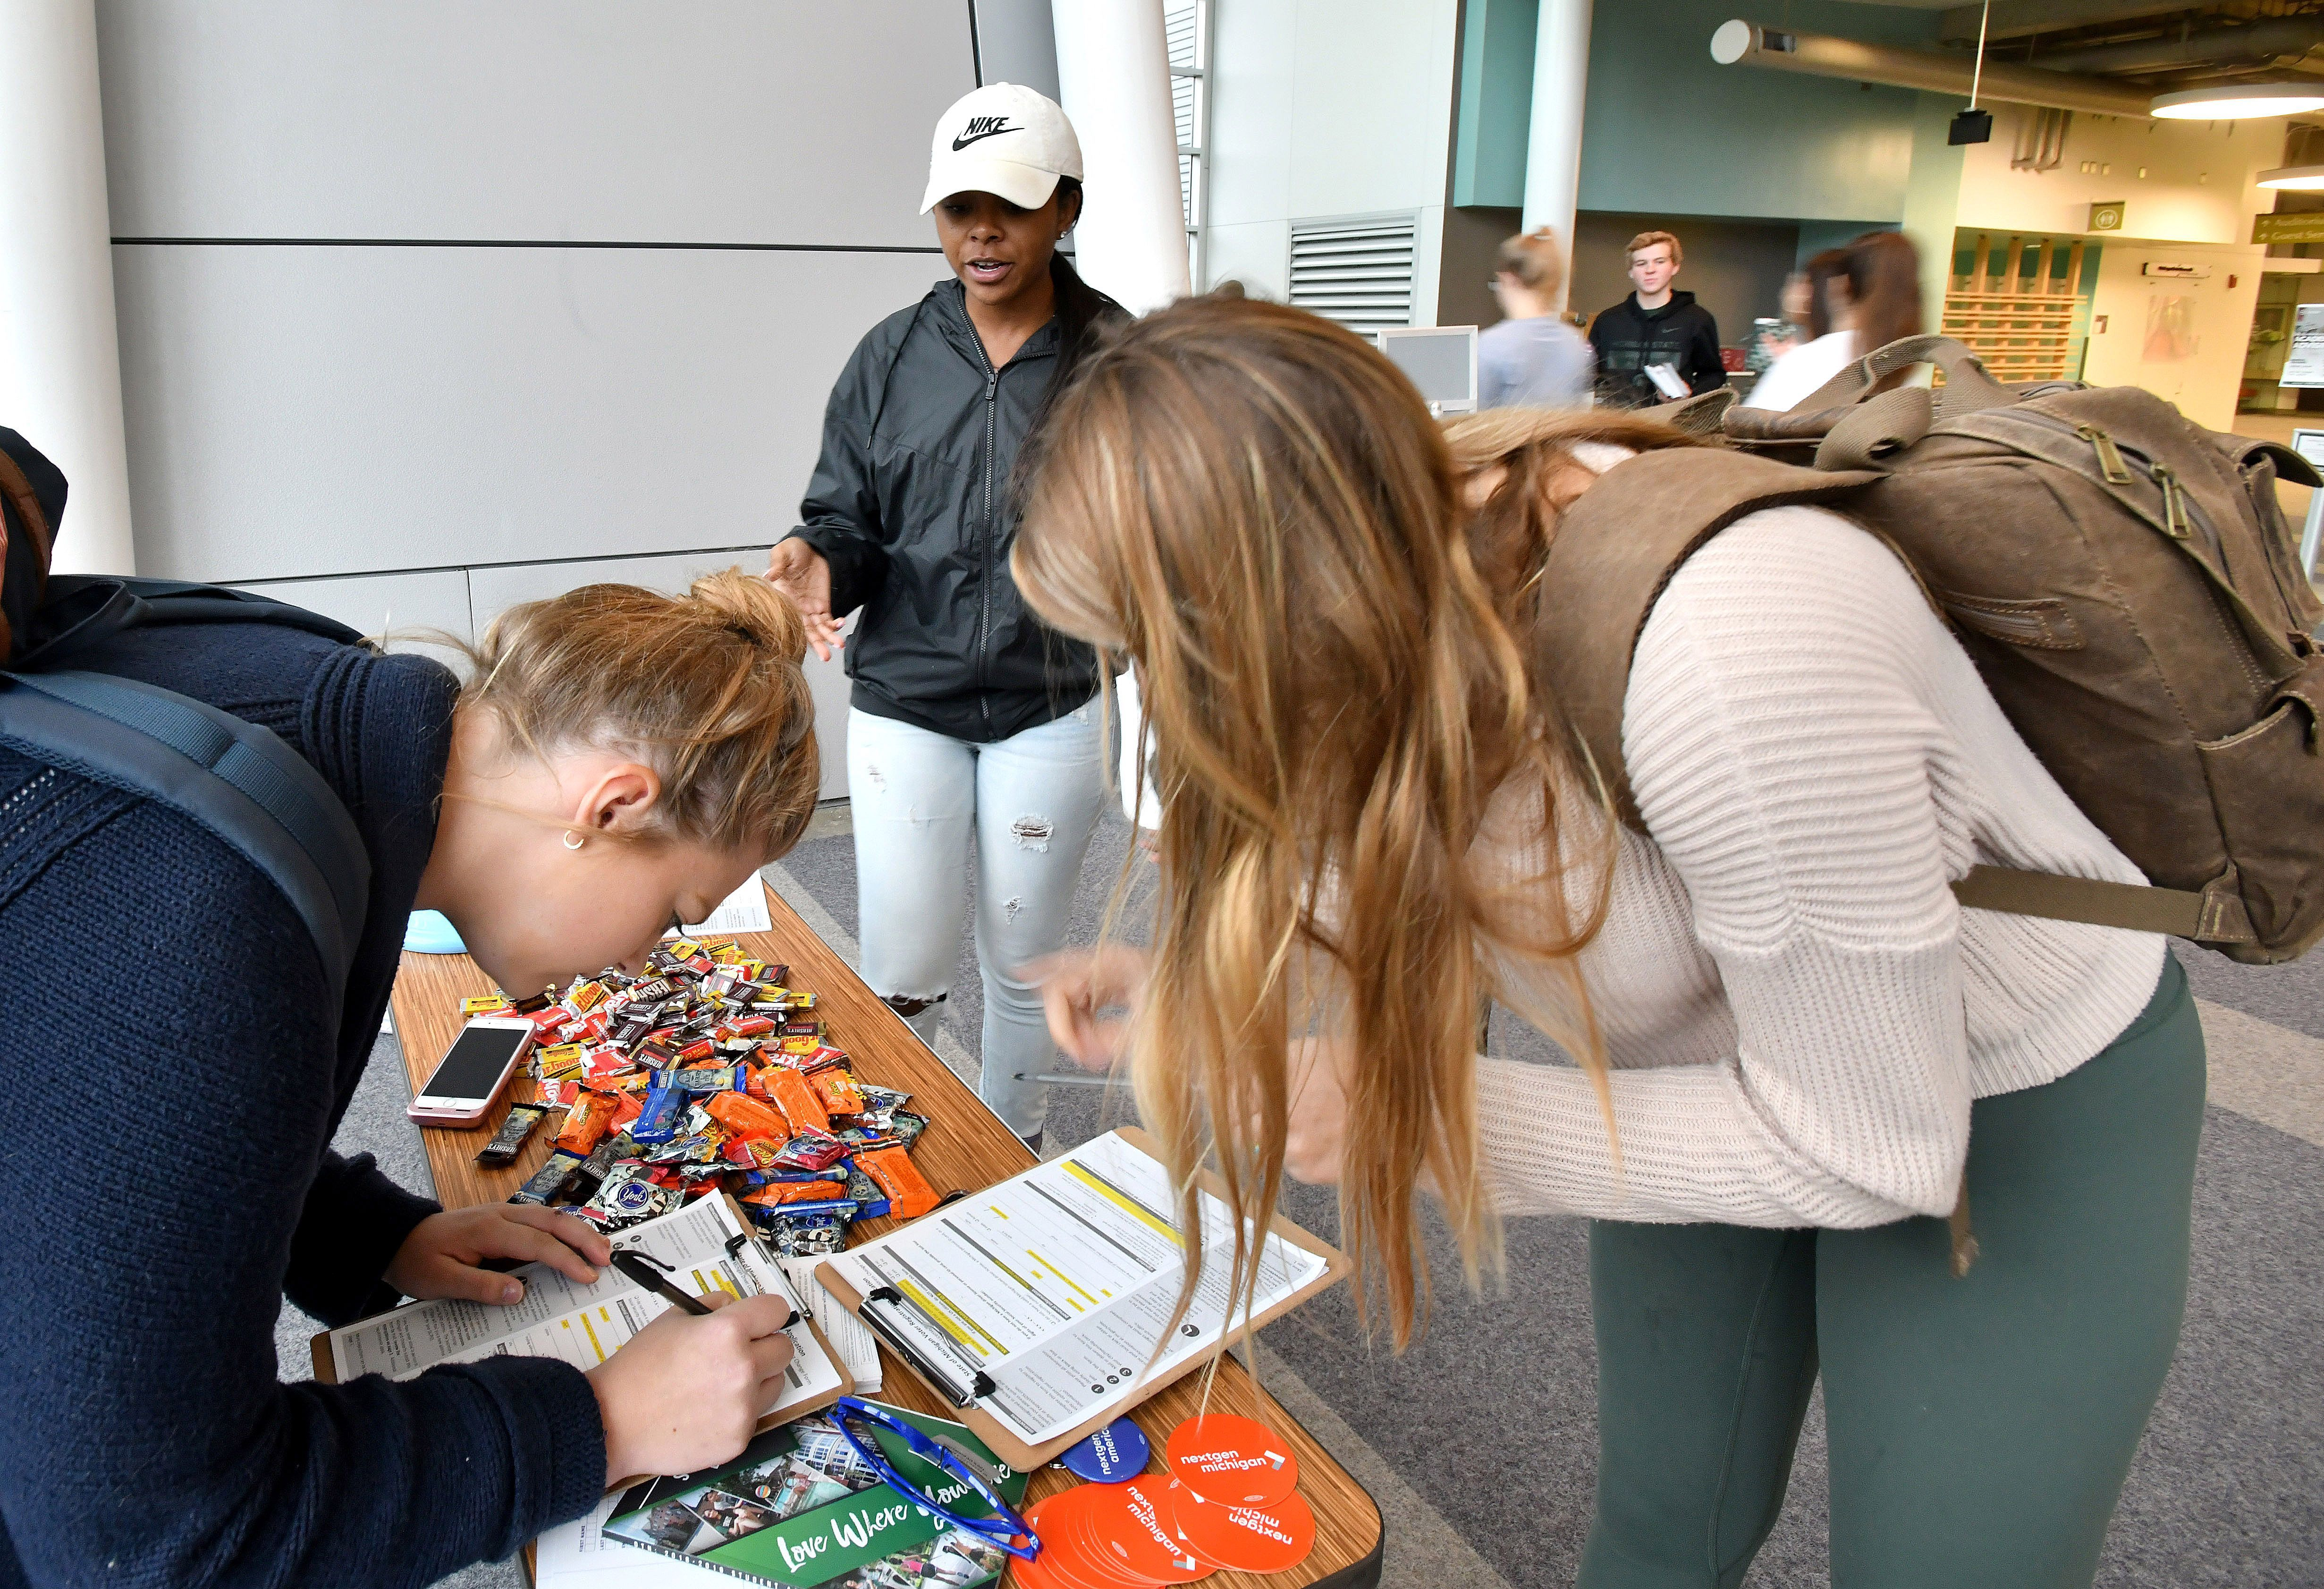 Shanel Thomas (center) of NextGen America oversees Michigan State University students registering to move their registration to East Lansing so they can vote locally in the midterm election.